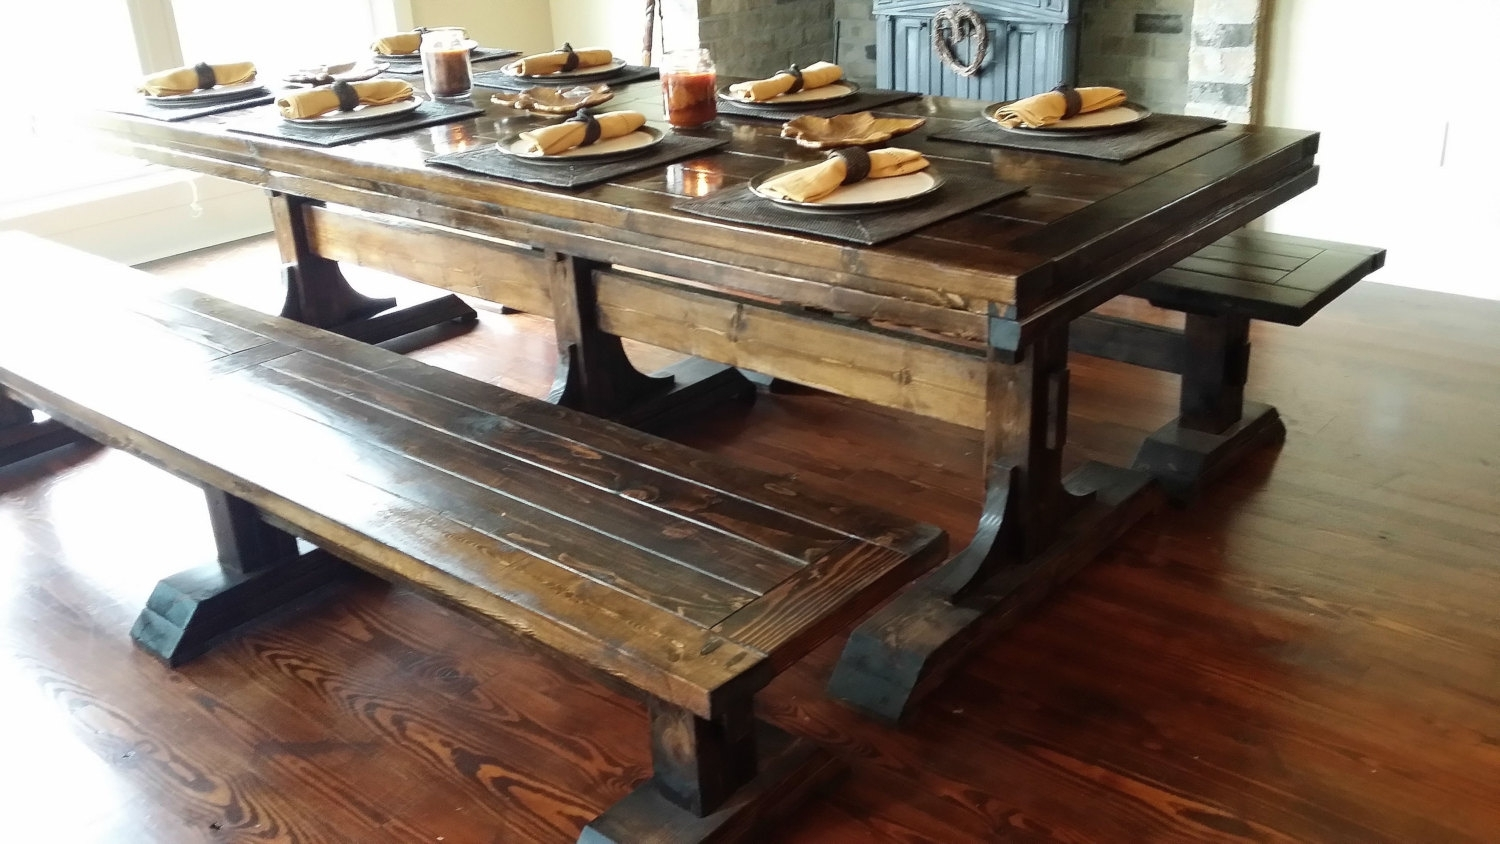 Rustic Farmhouse Table Plans Unique Winsome Farm Dining Tables 12 Pertaining To Most Popular Farm Dining Tables (Image 15 of 20)